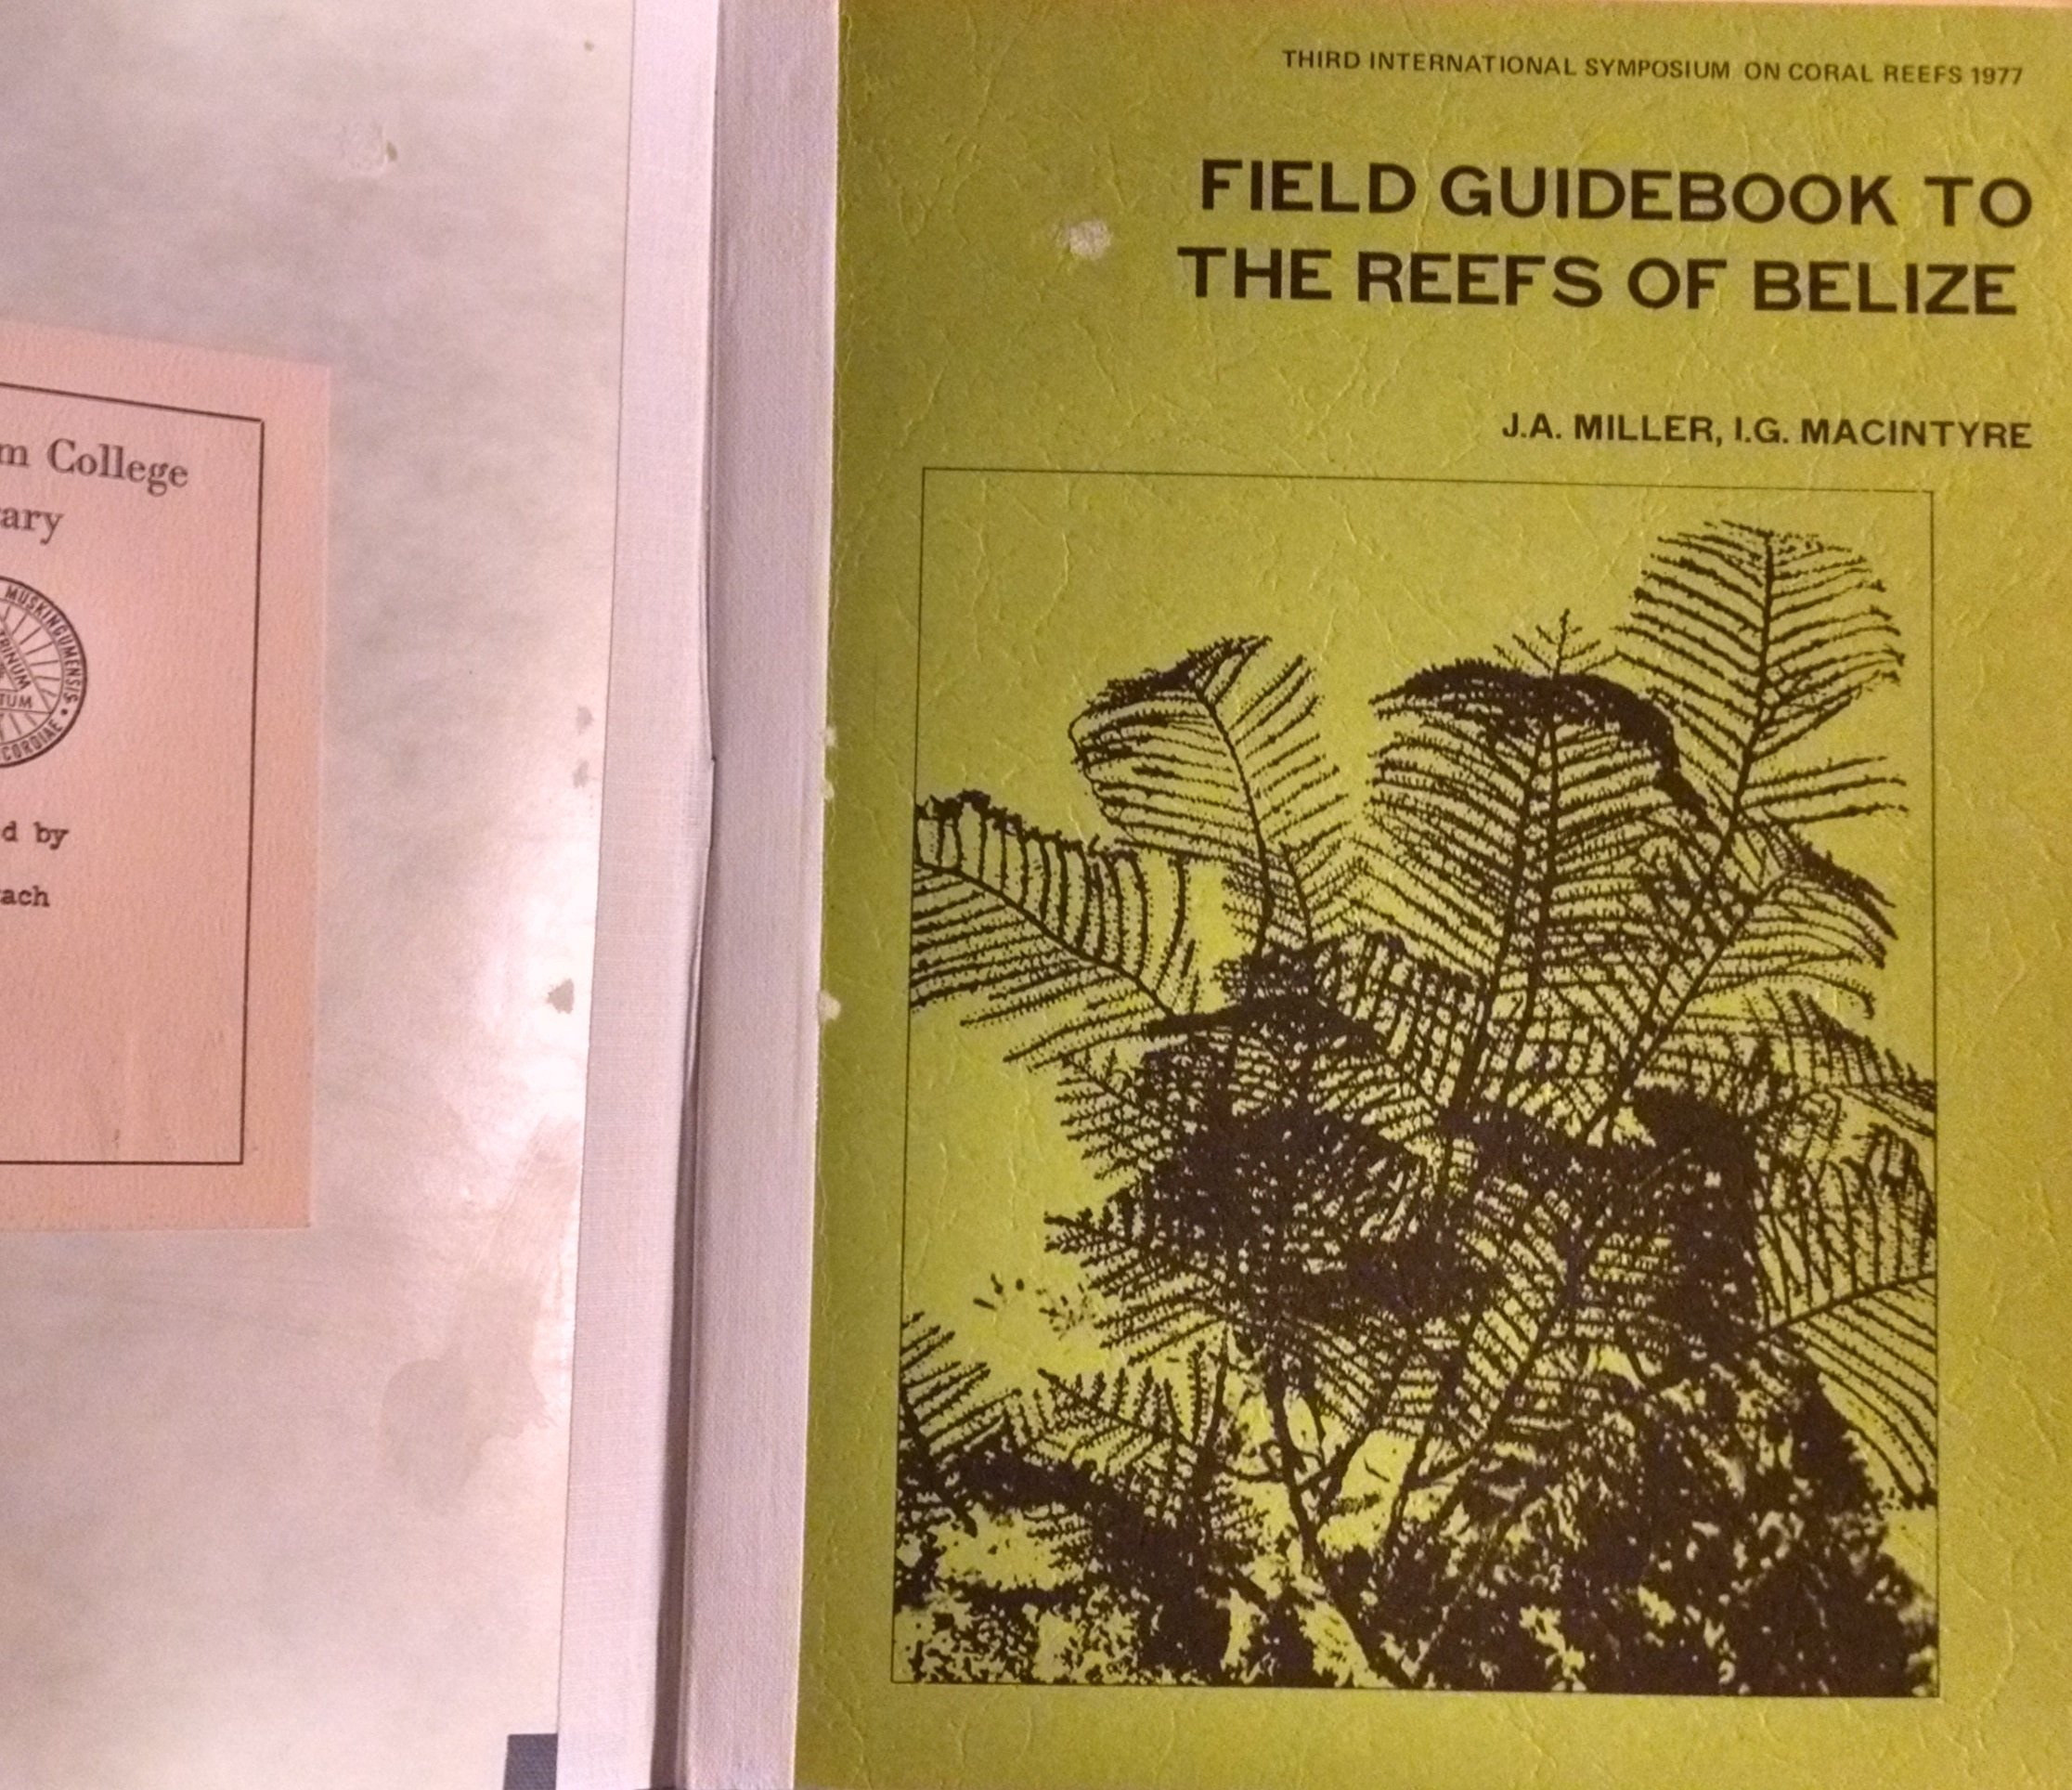 Field guidebook to the reefs of Belize